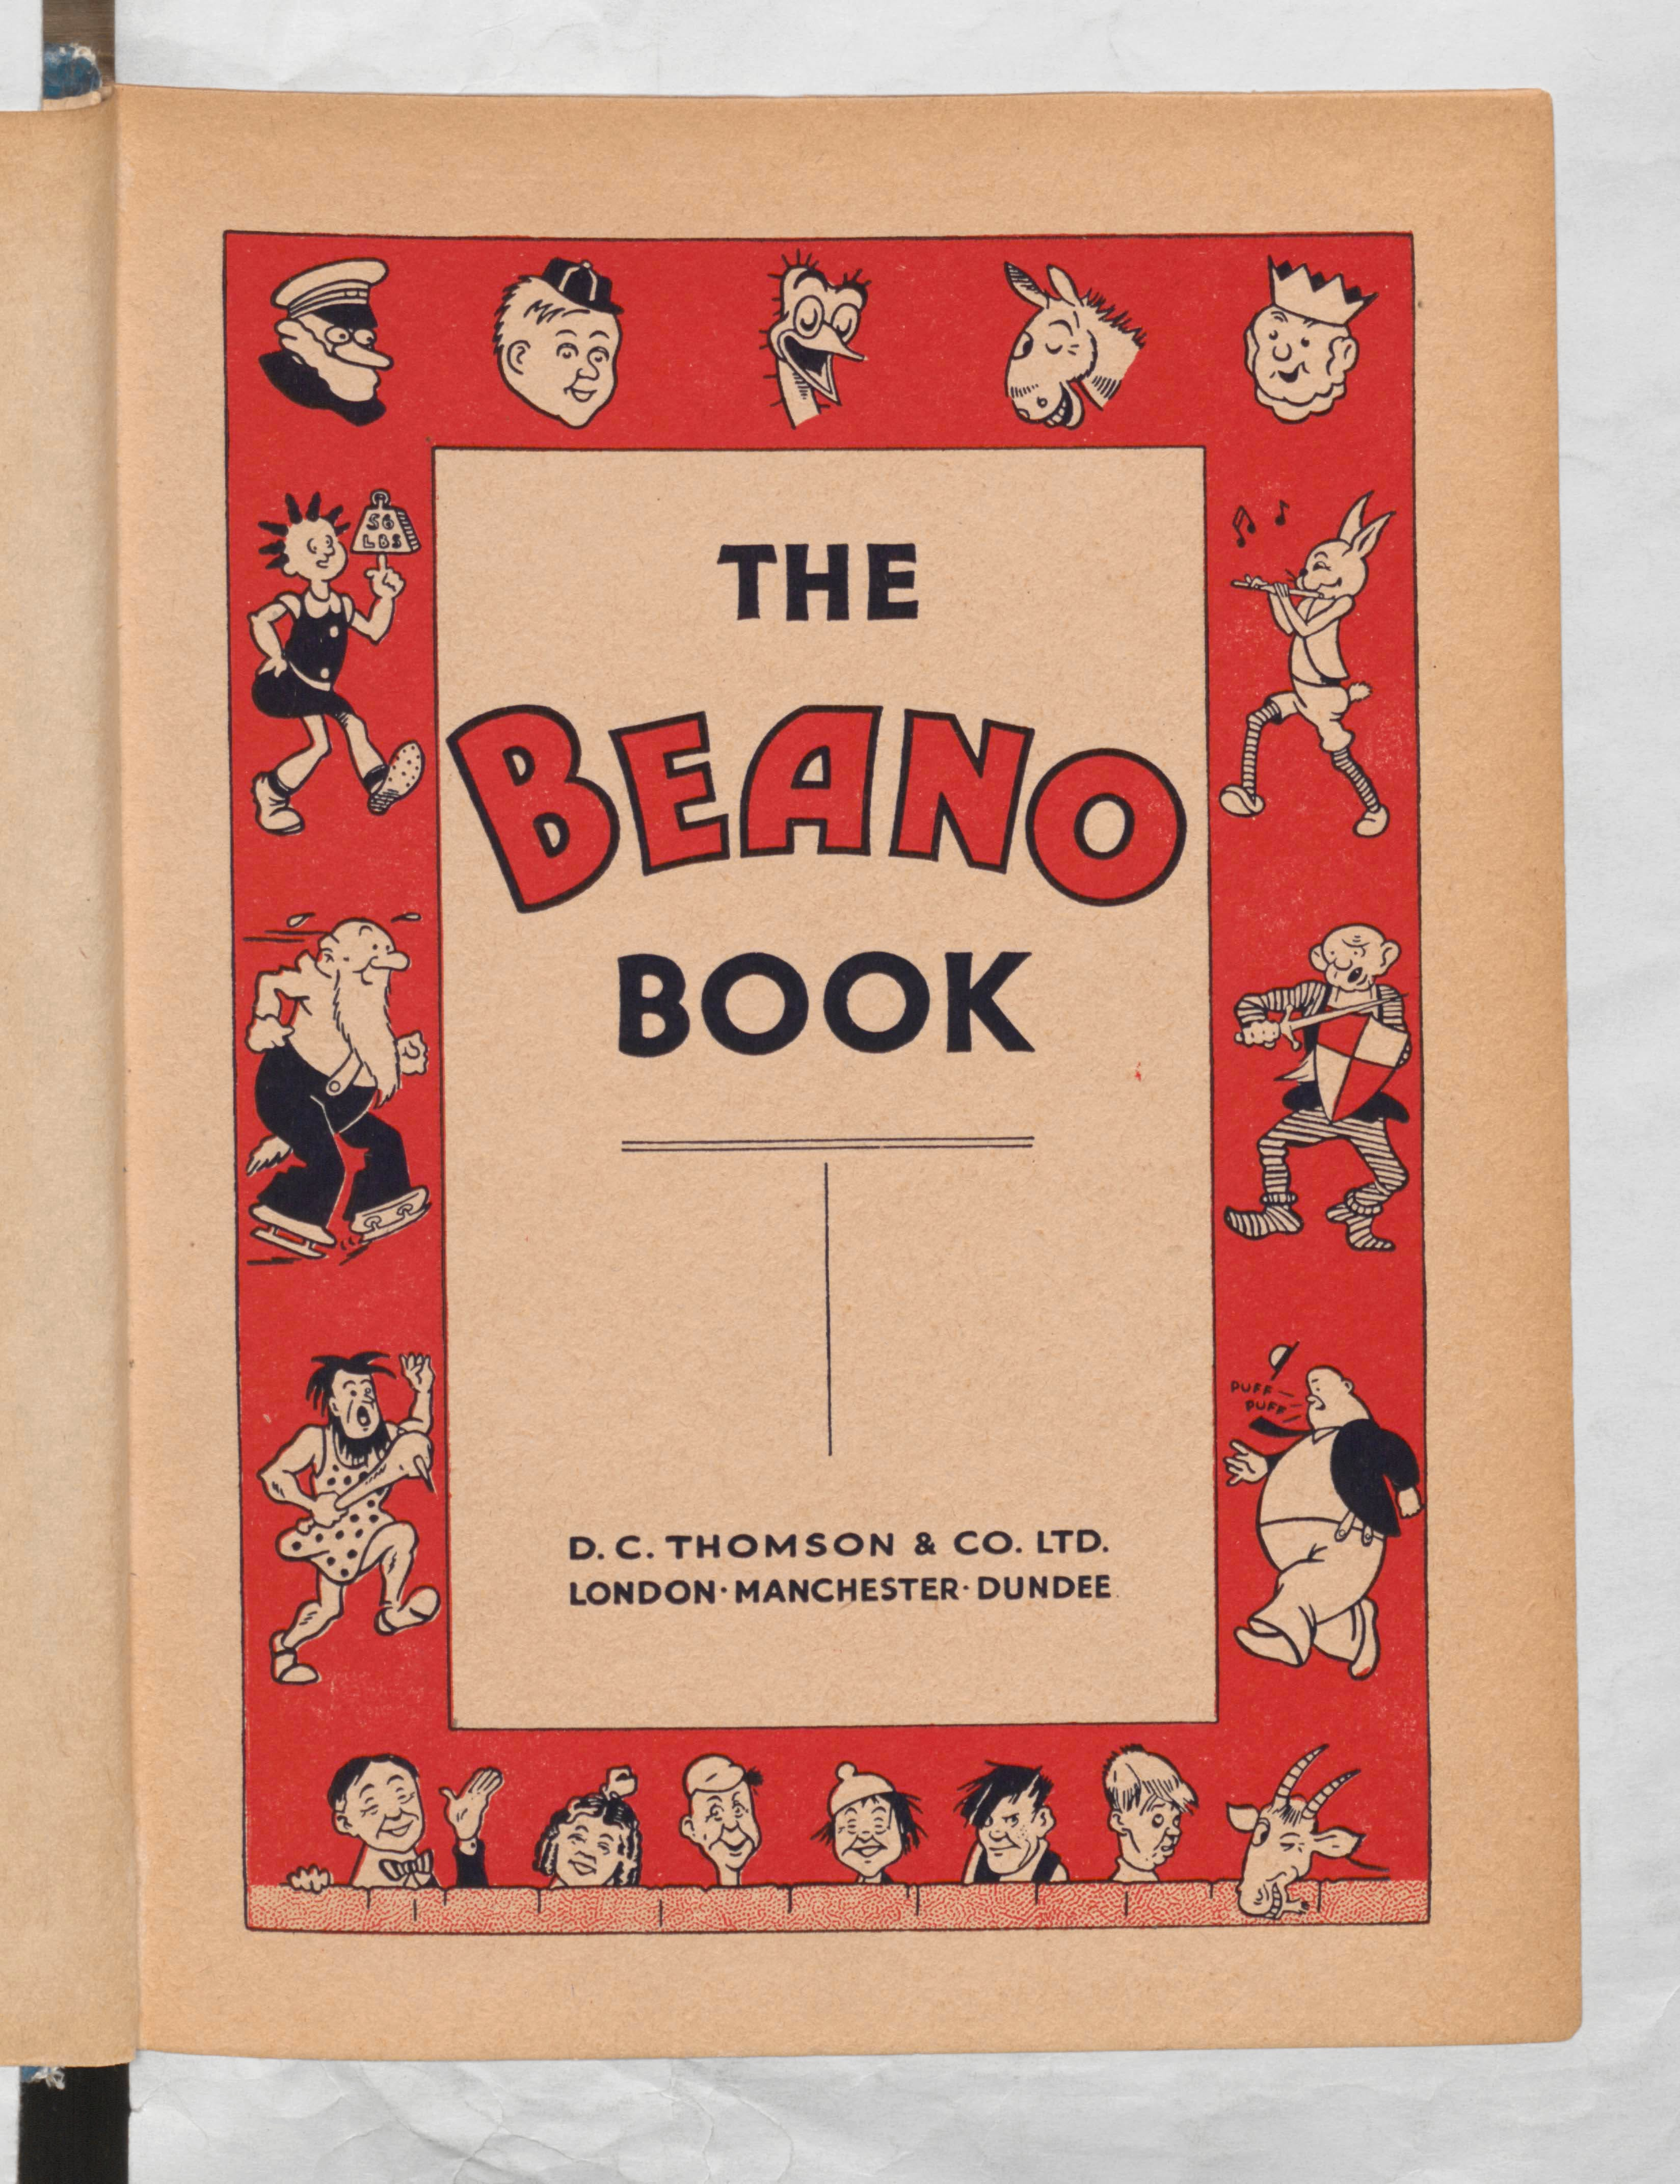 The first Beano Book - 1940